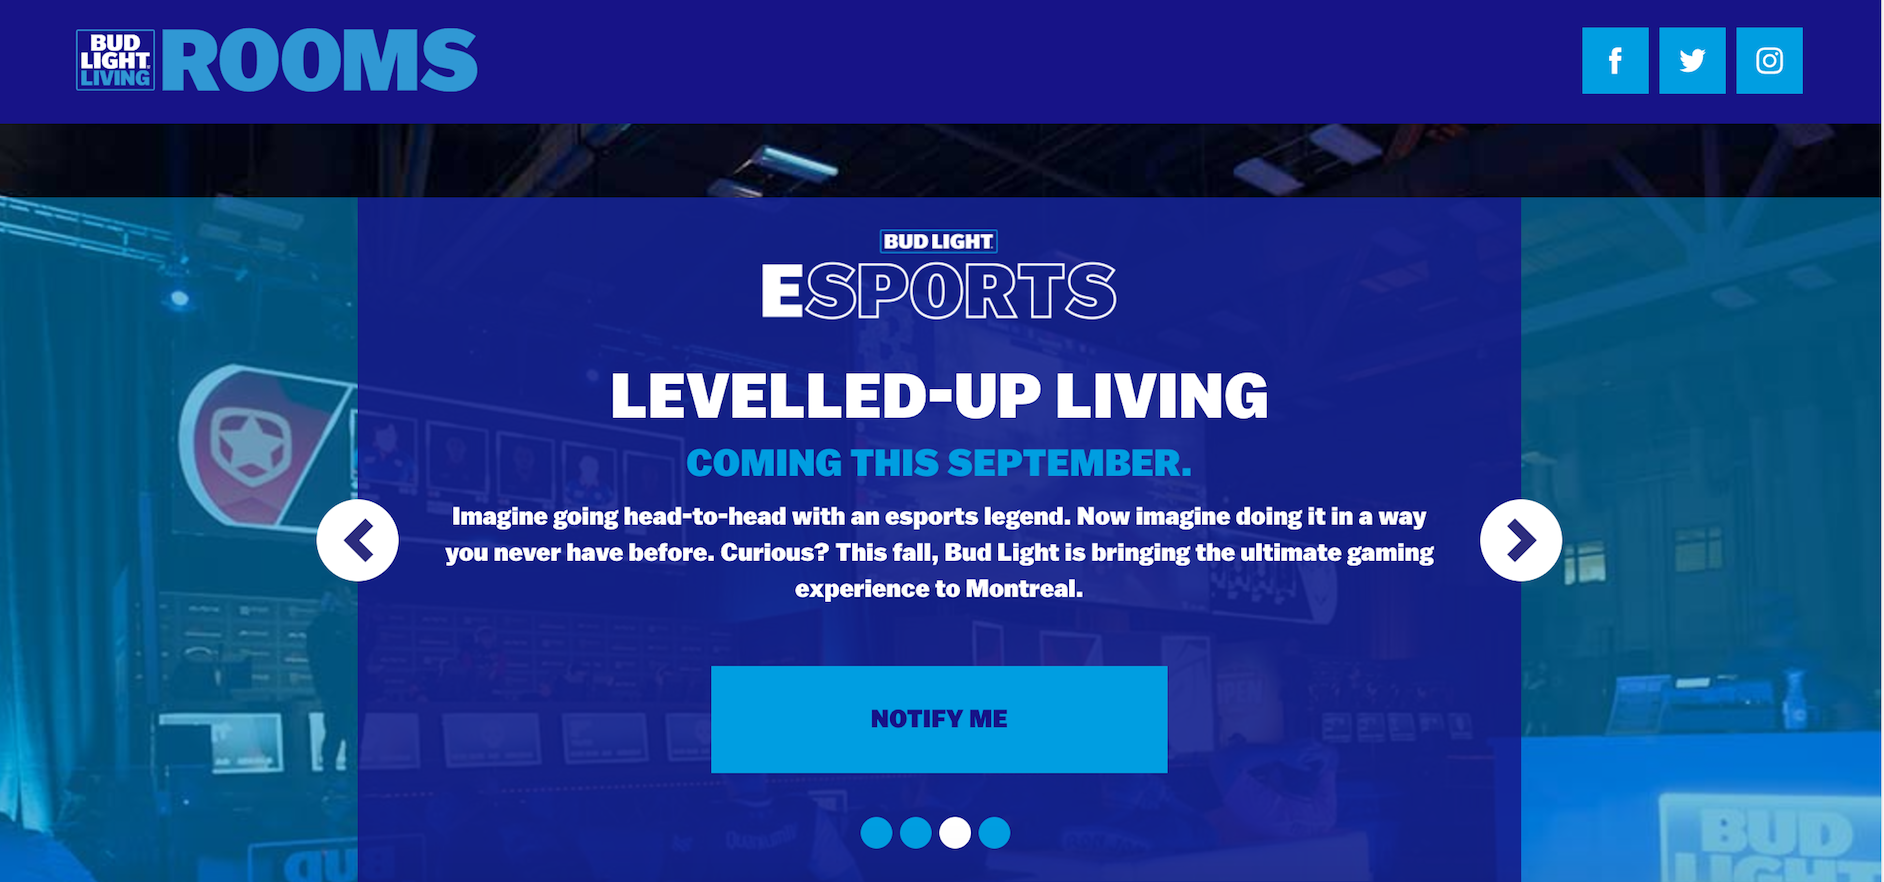 Bud Light's eSports Extension to Canada (Photo: Bud Light)